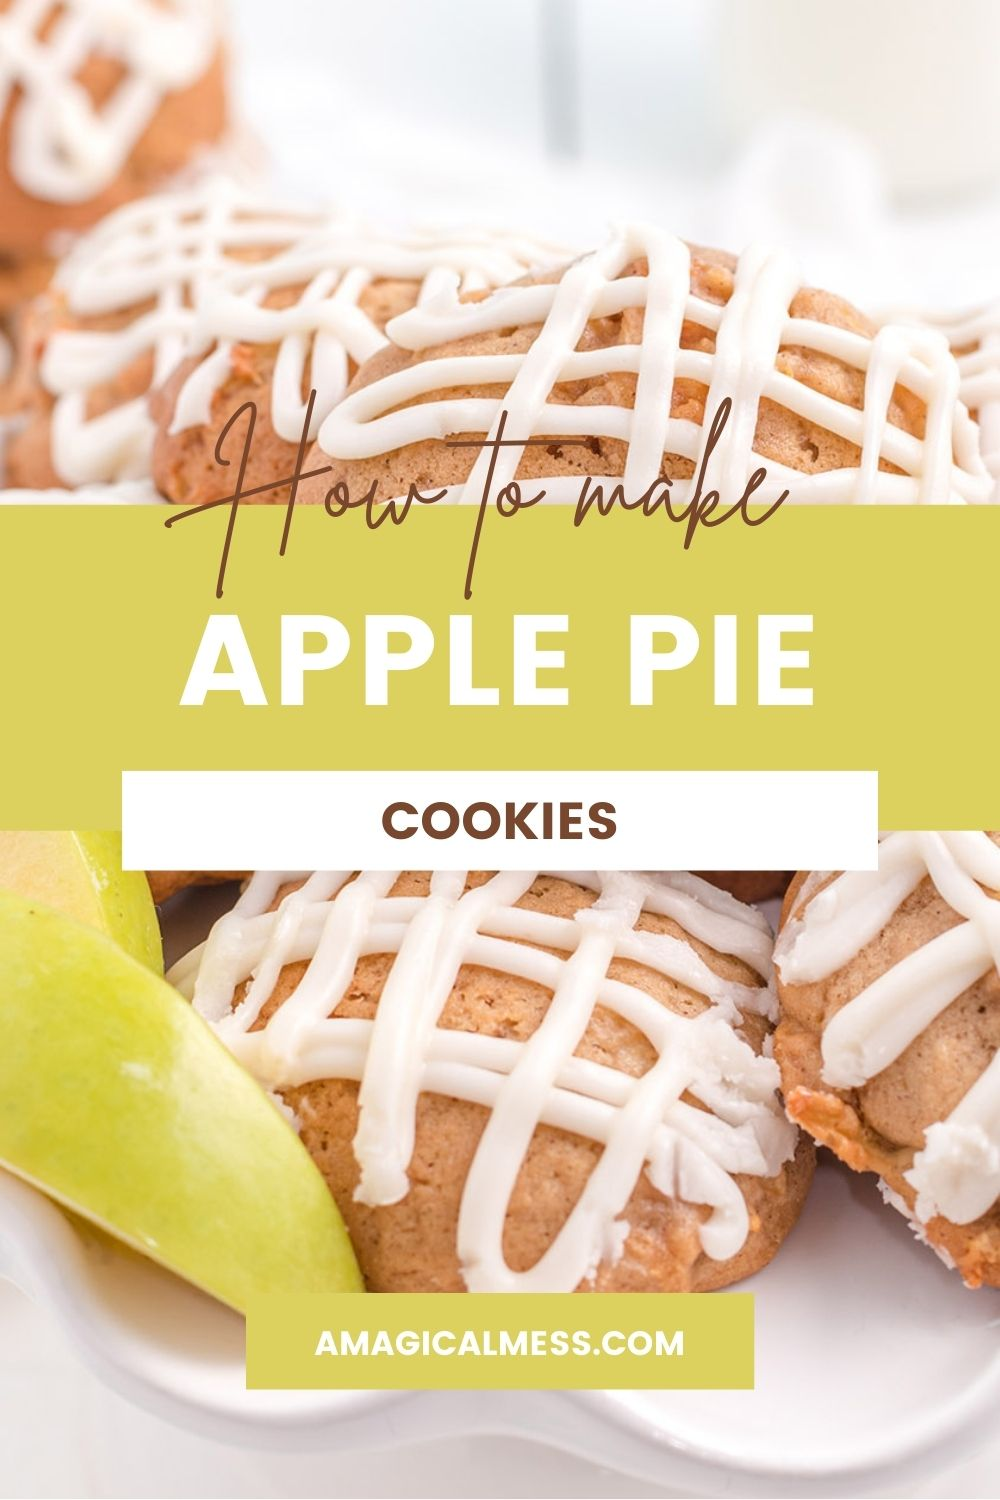 Apple cookies with glaze on a plate next to green apple slices.